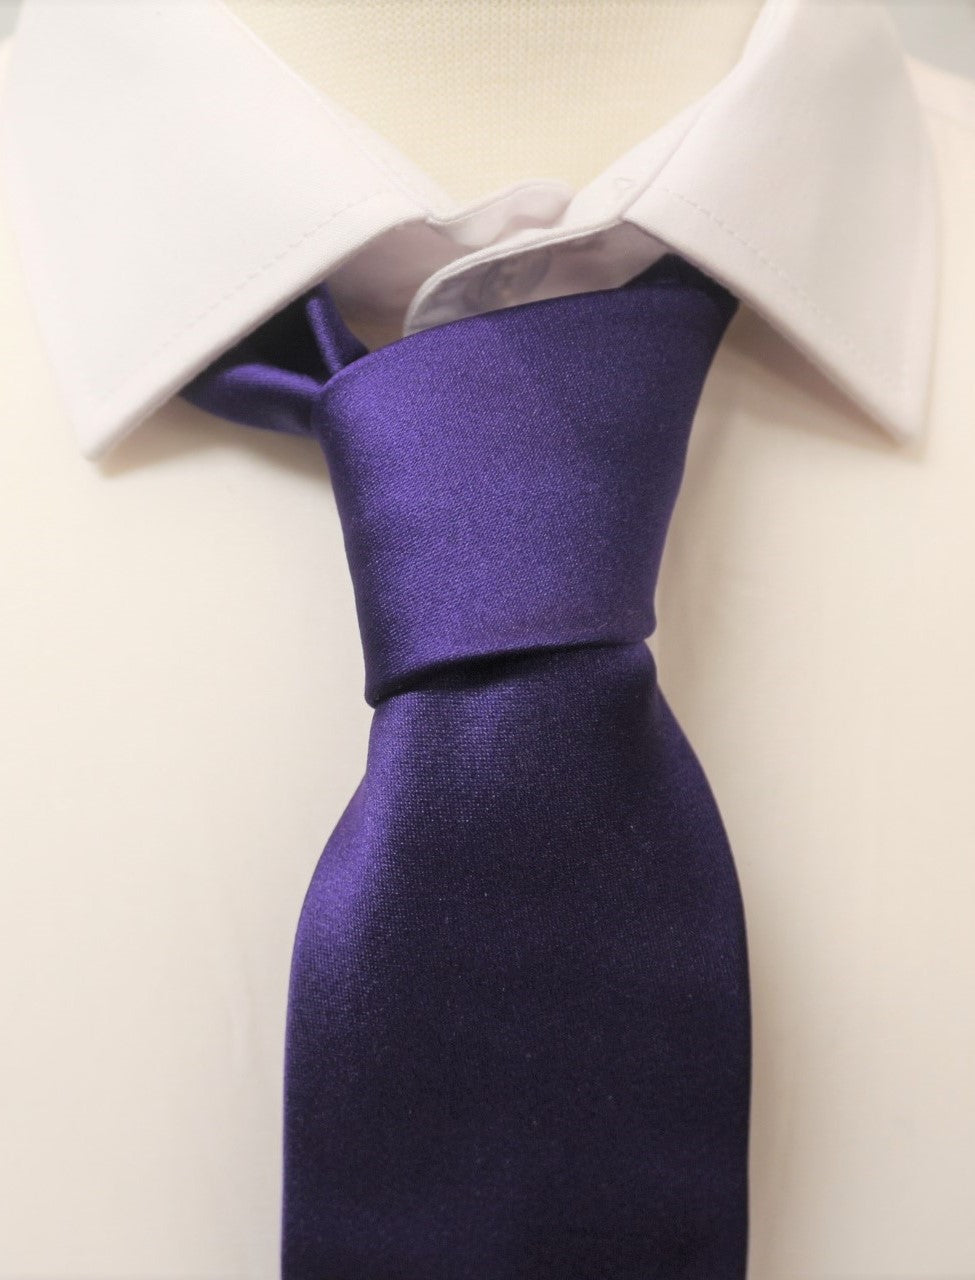 Purple Satin Tie - Anderson Kilts